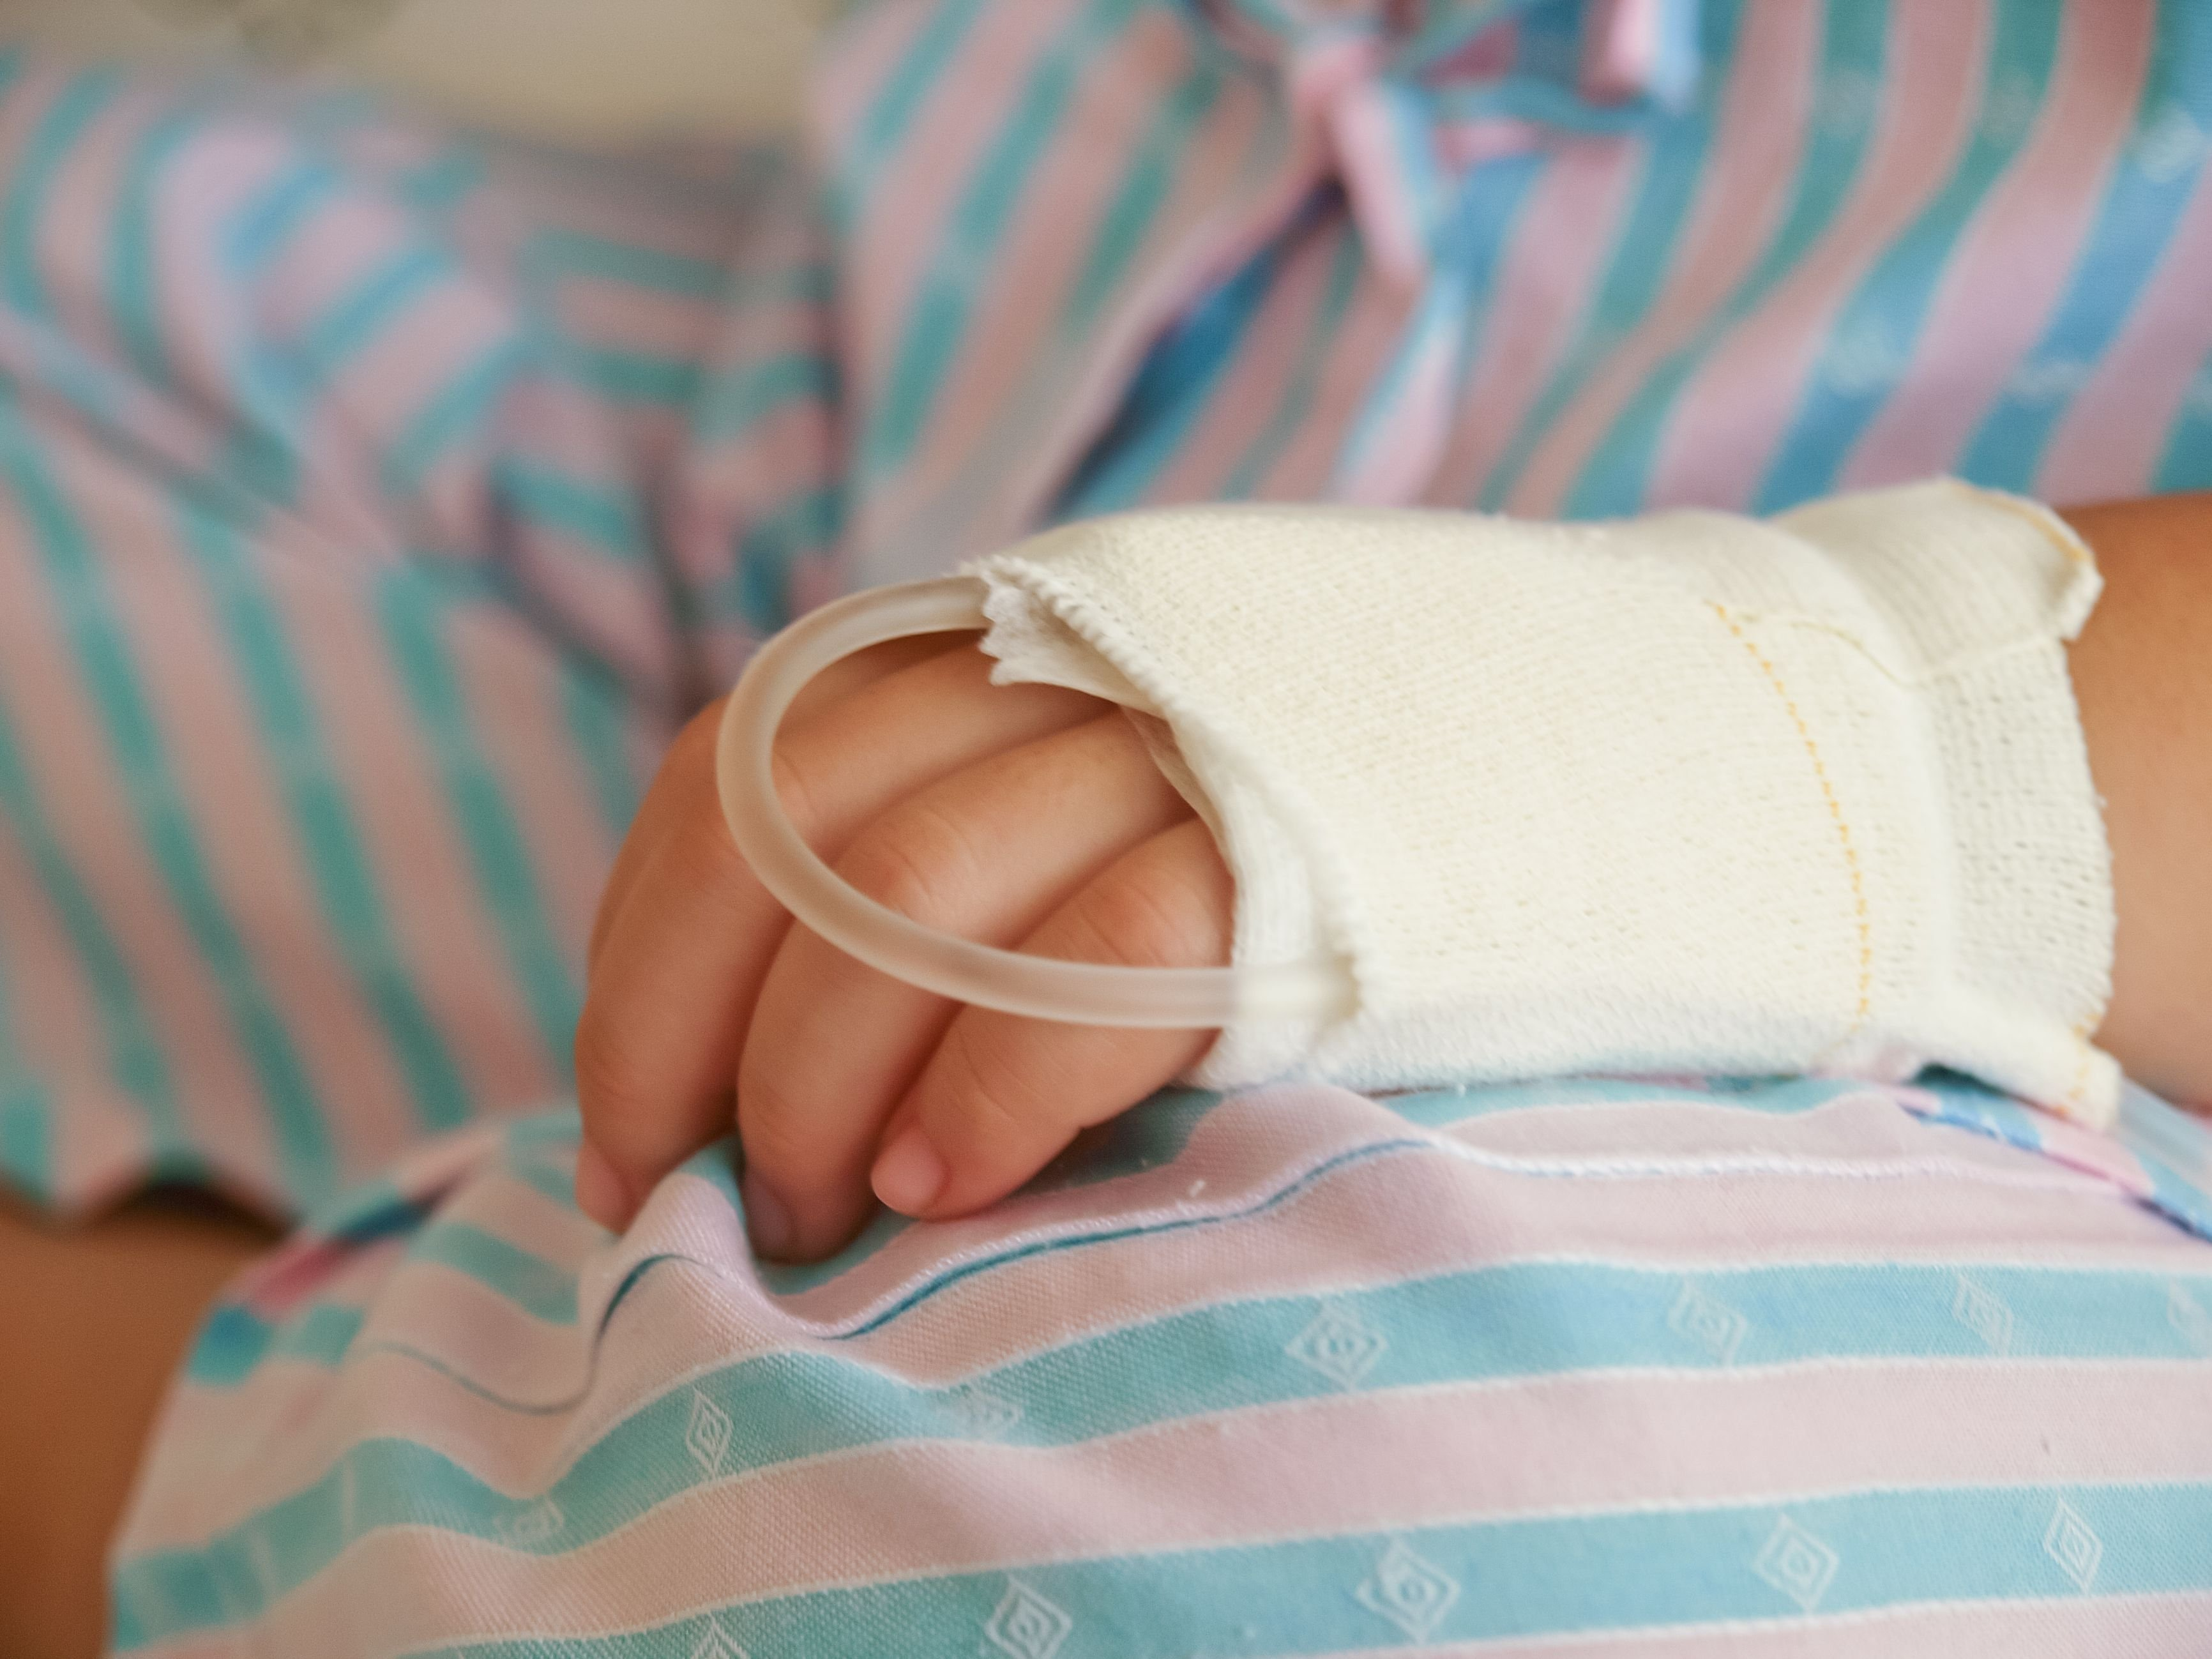 A baby's hand with a dextrose. | Source: Shutterstock